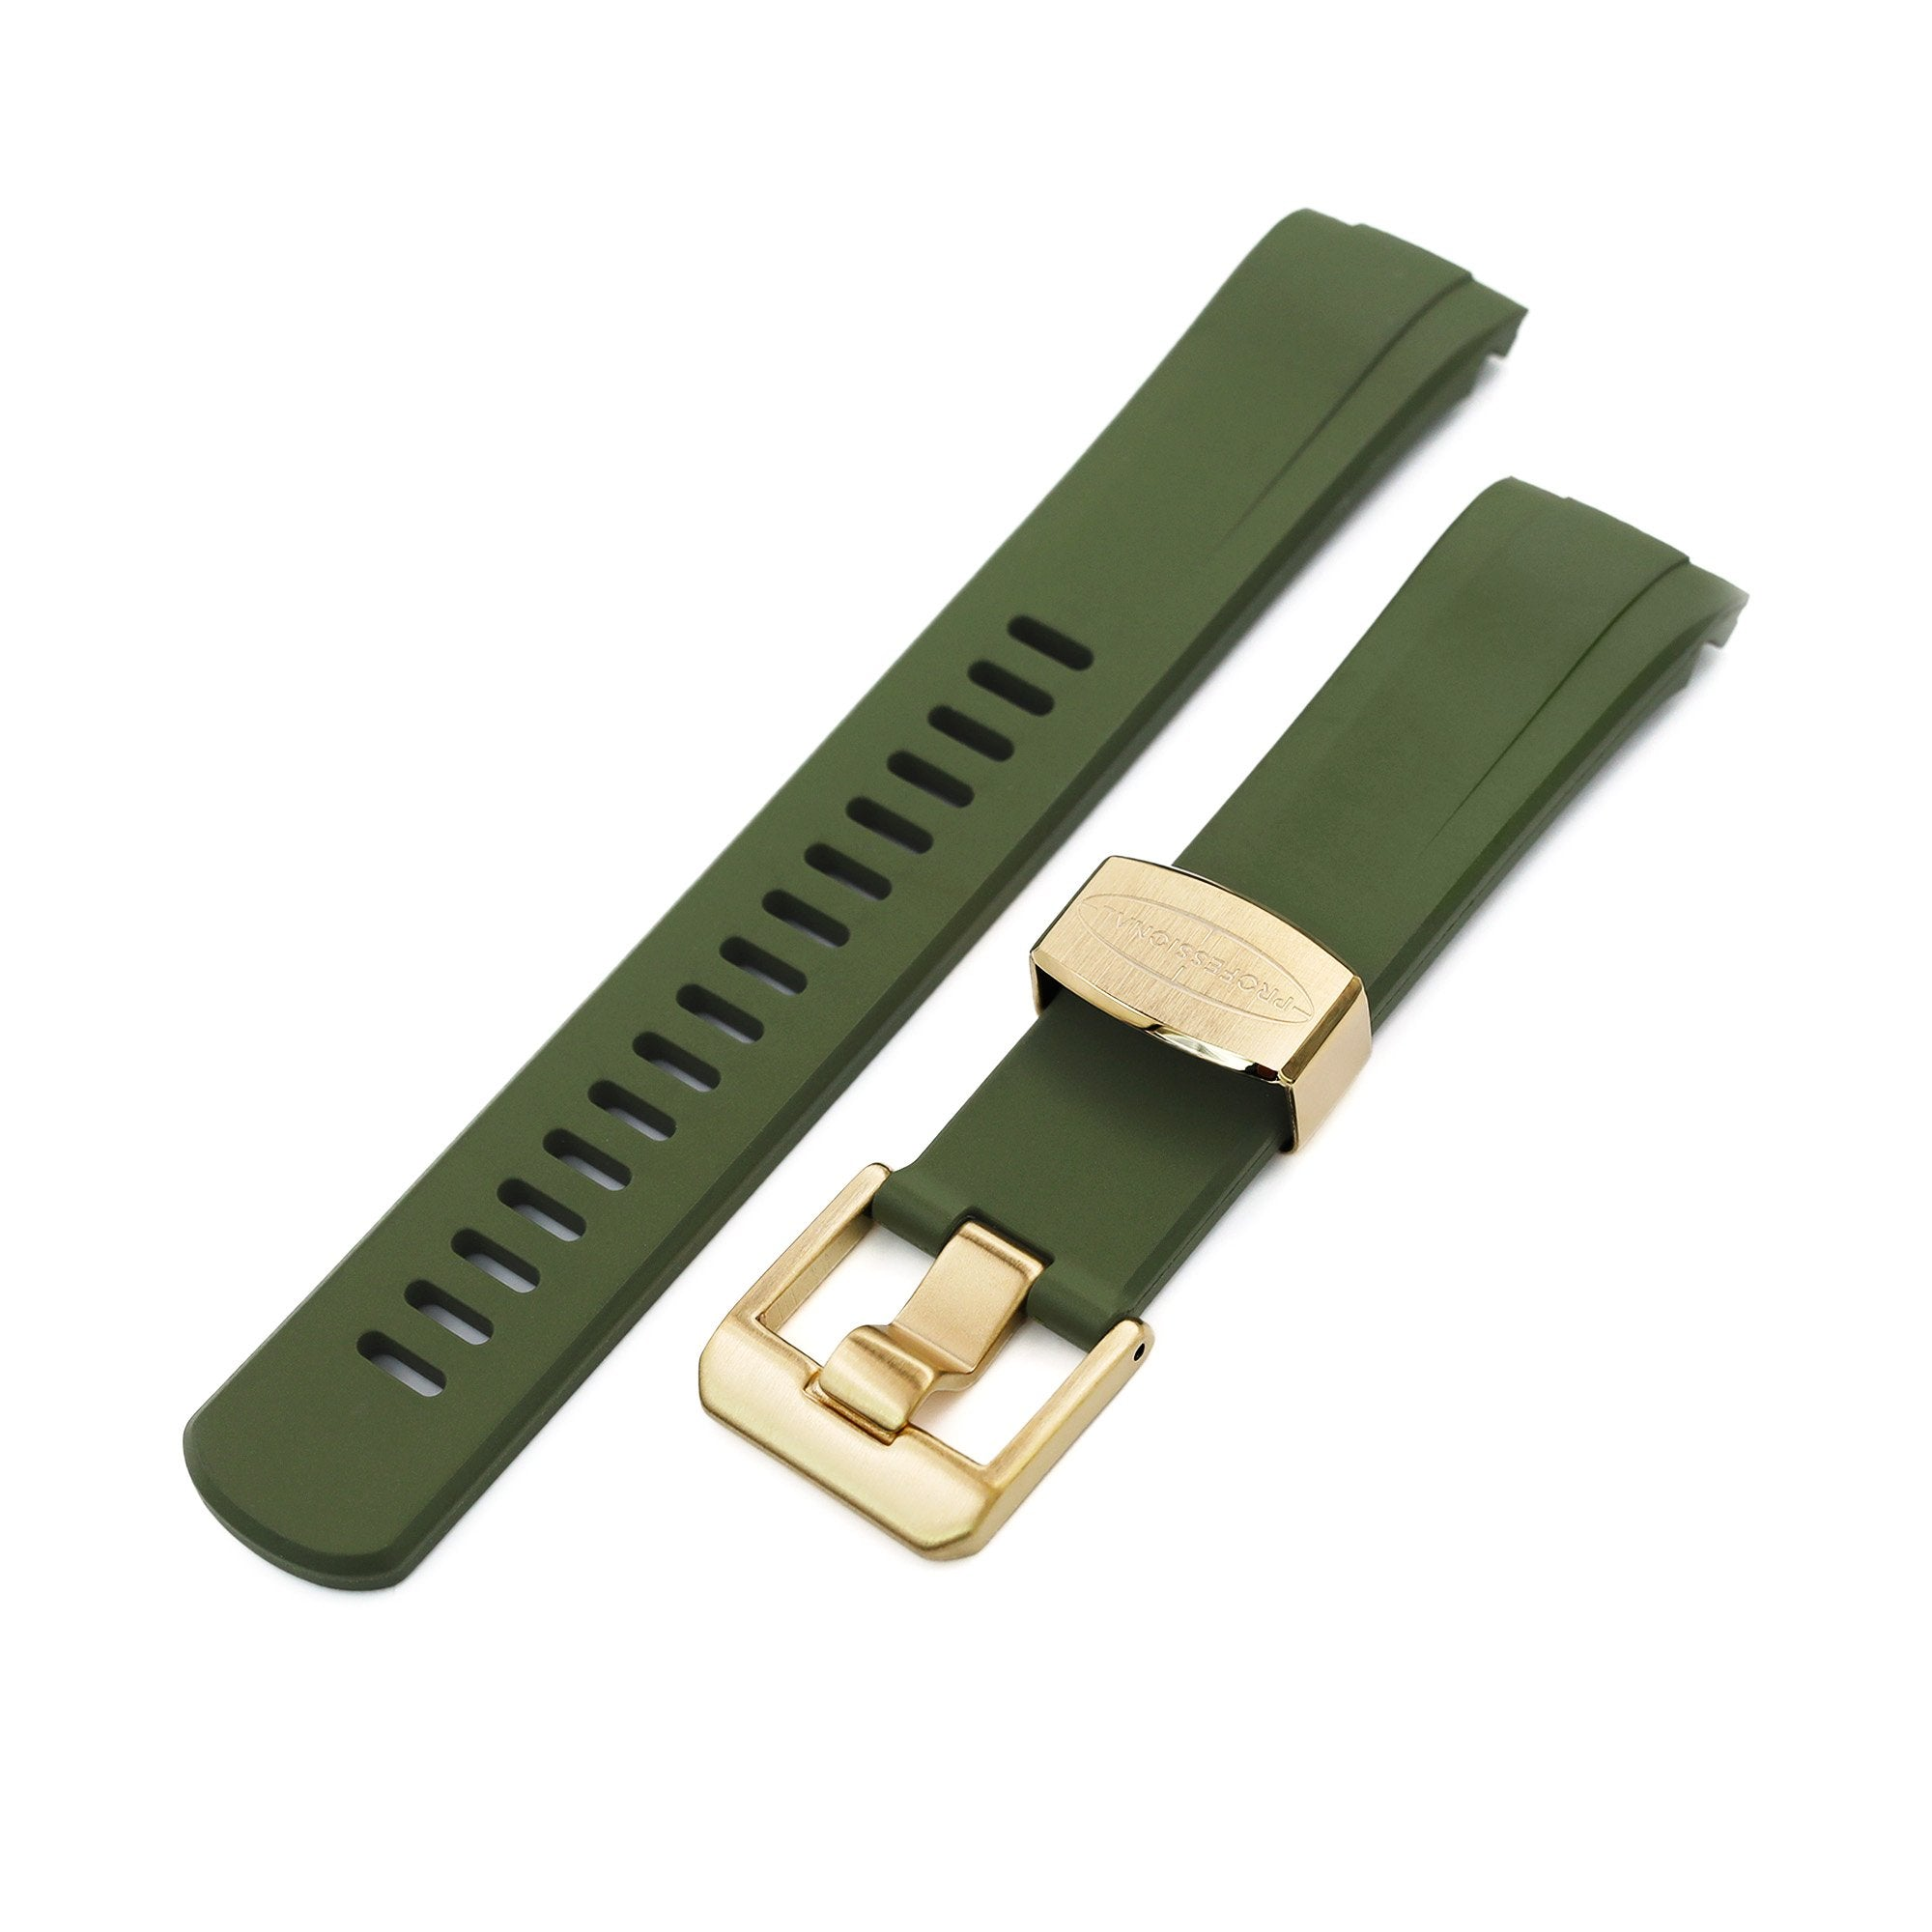 Crafter Blue 22mm Curved Lug End Military Green Rubber Dive Watch Strap for Seiko Gold Turtle SRPC44 IP Gold Buckle Strapcode Watch Bands